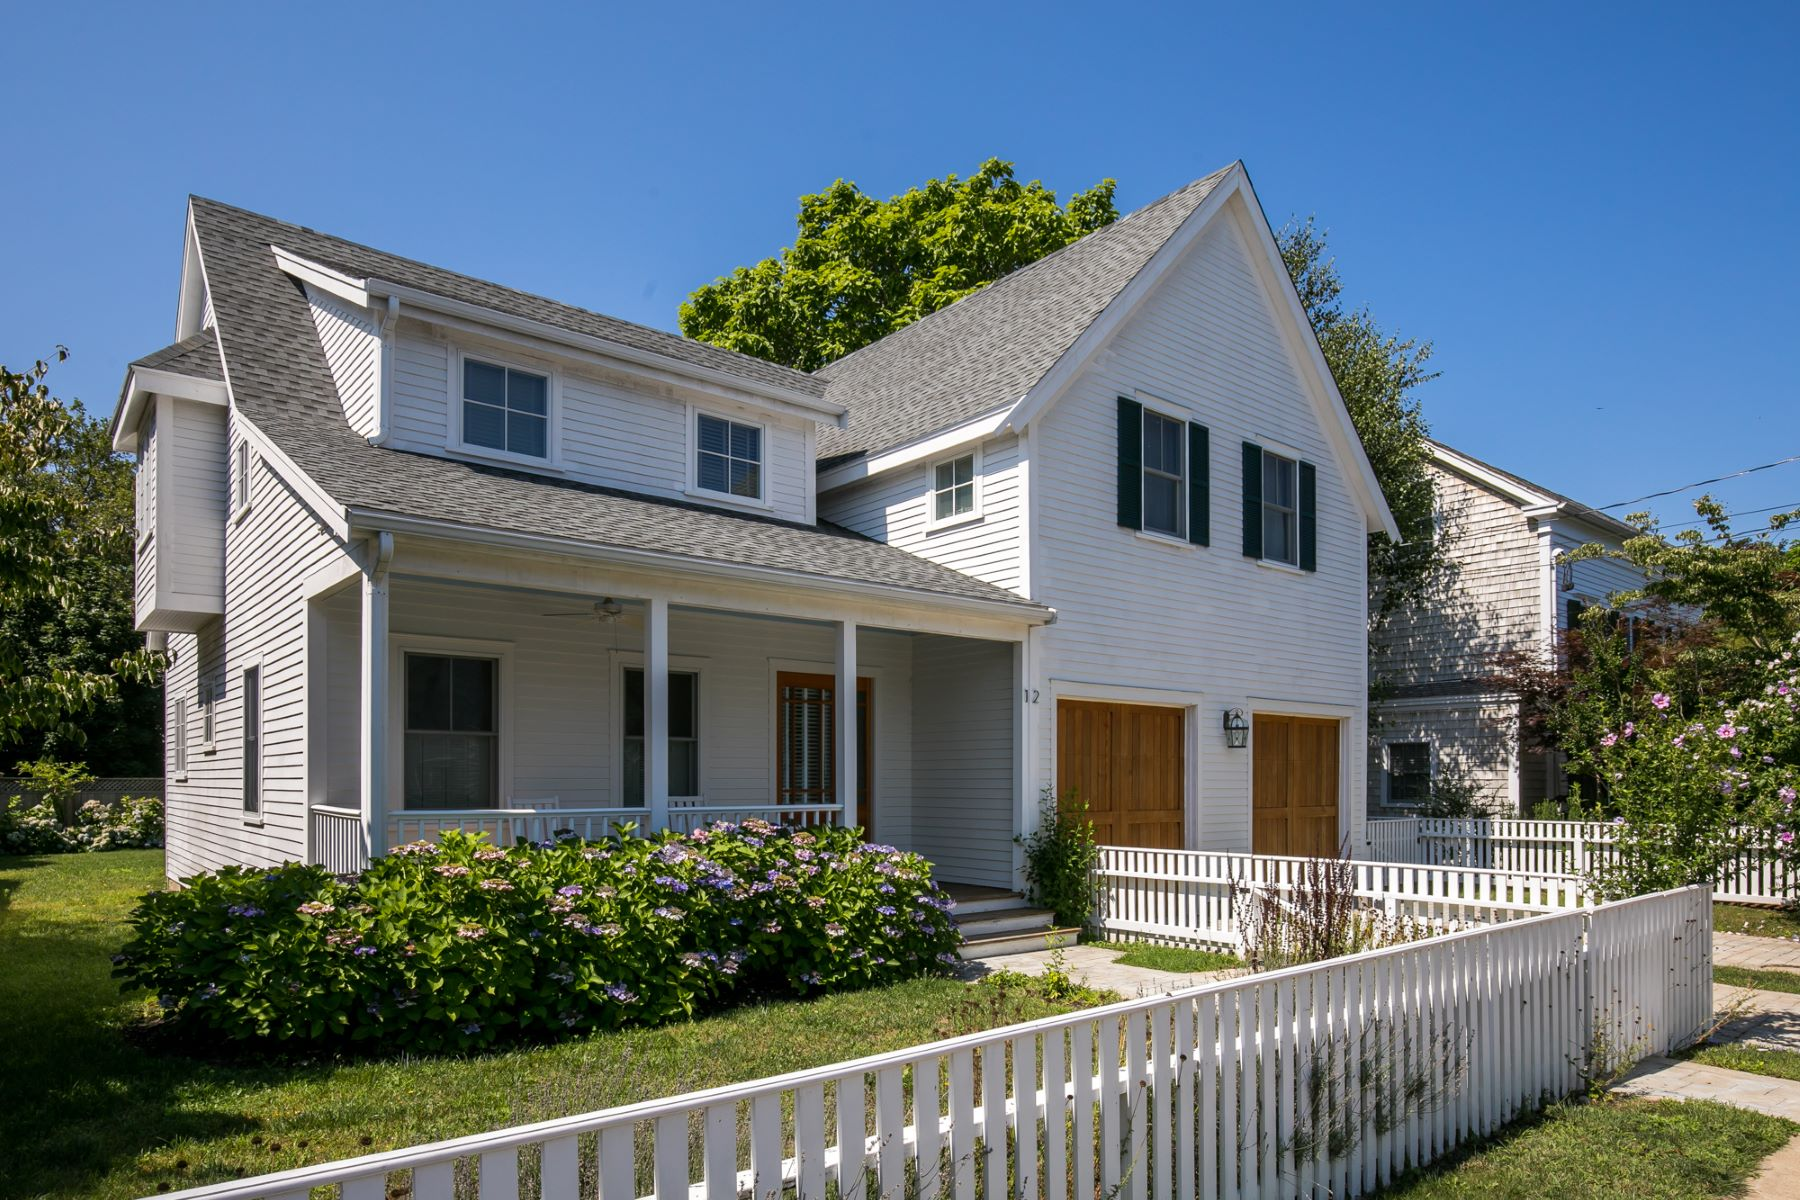 Single Family Homes for Active at Modern Home in the Village 12 Norton Street Edgartown, Massachusetts 02539 United States